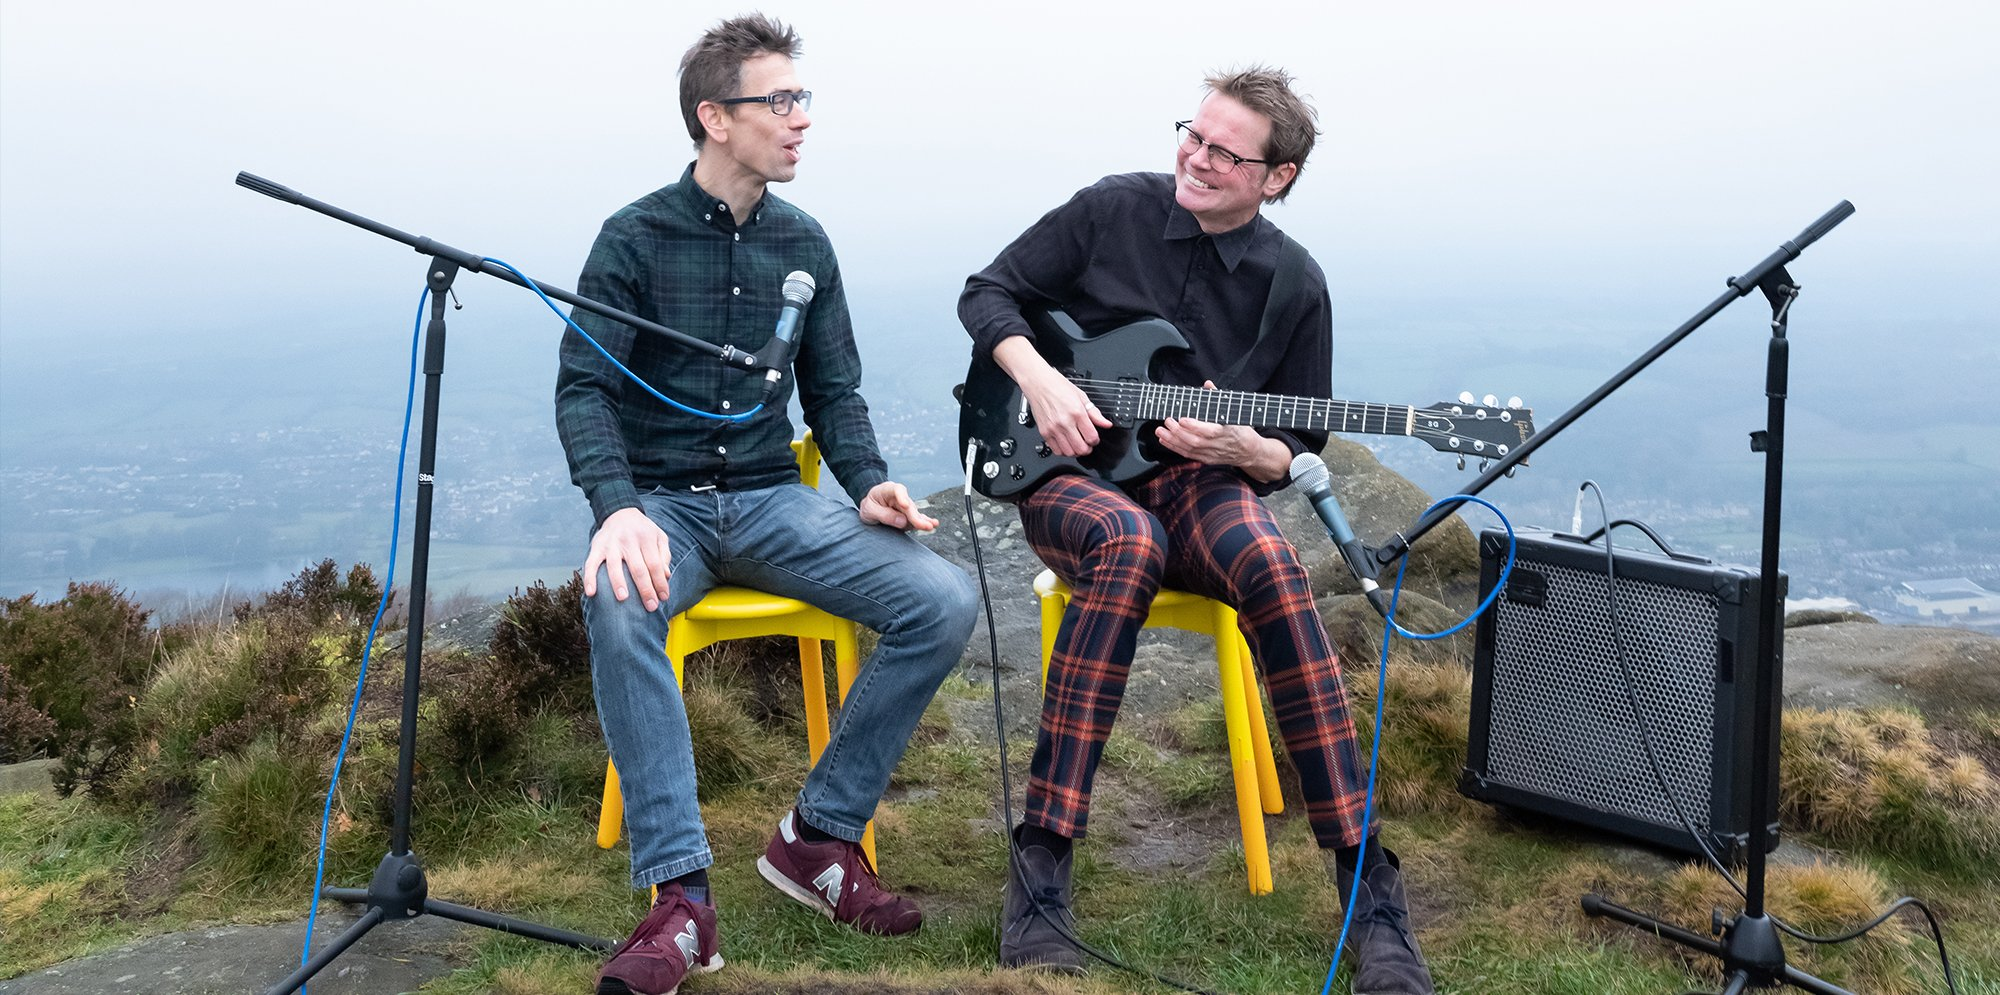 Two musicians are sat on a mountain top with guitars and microphones